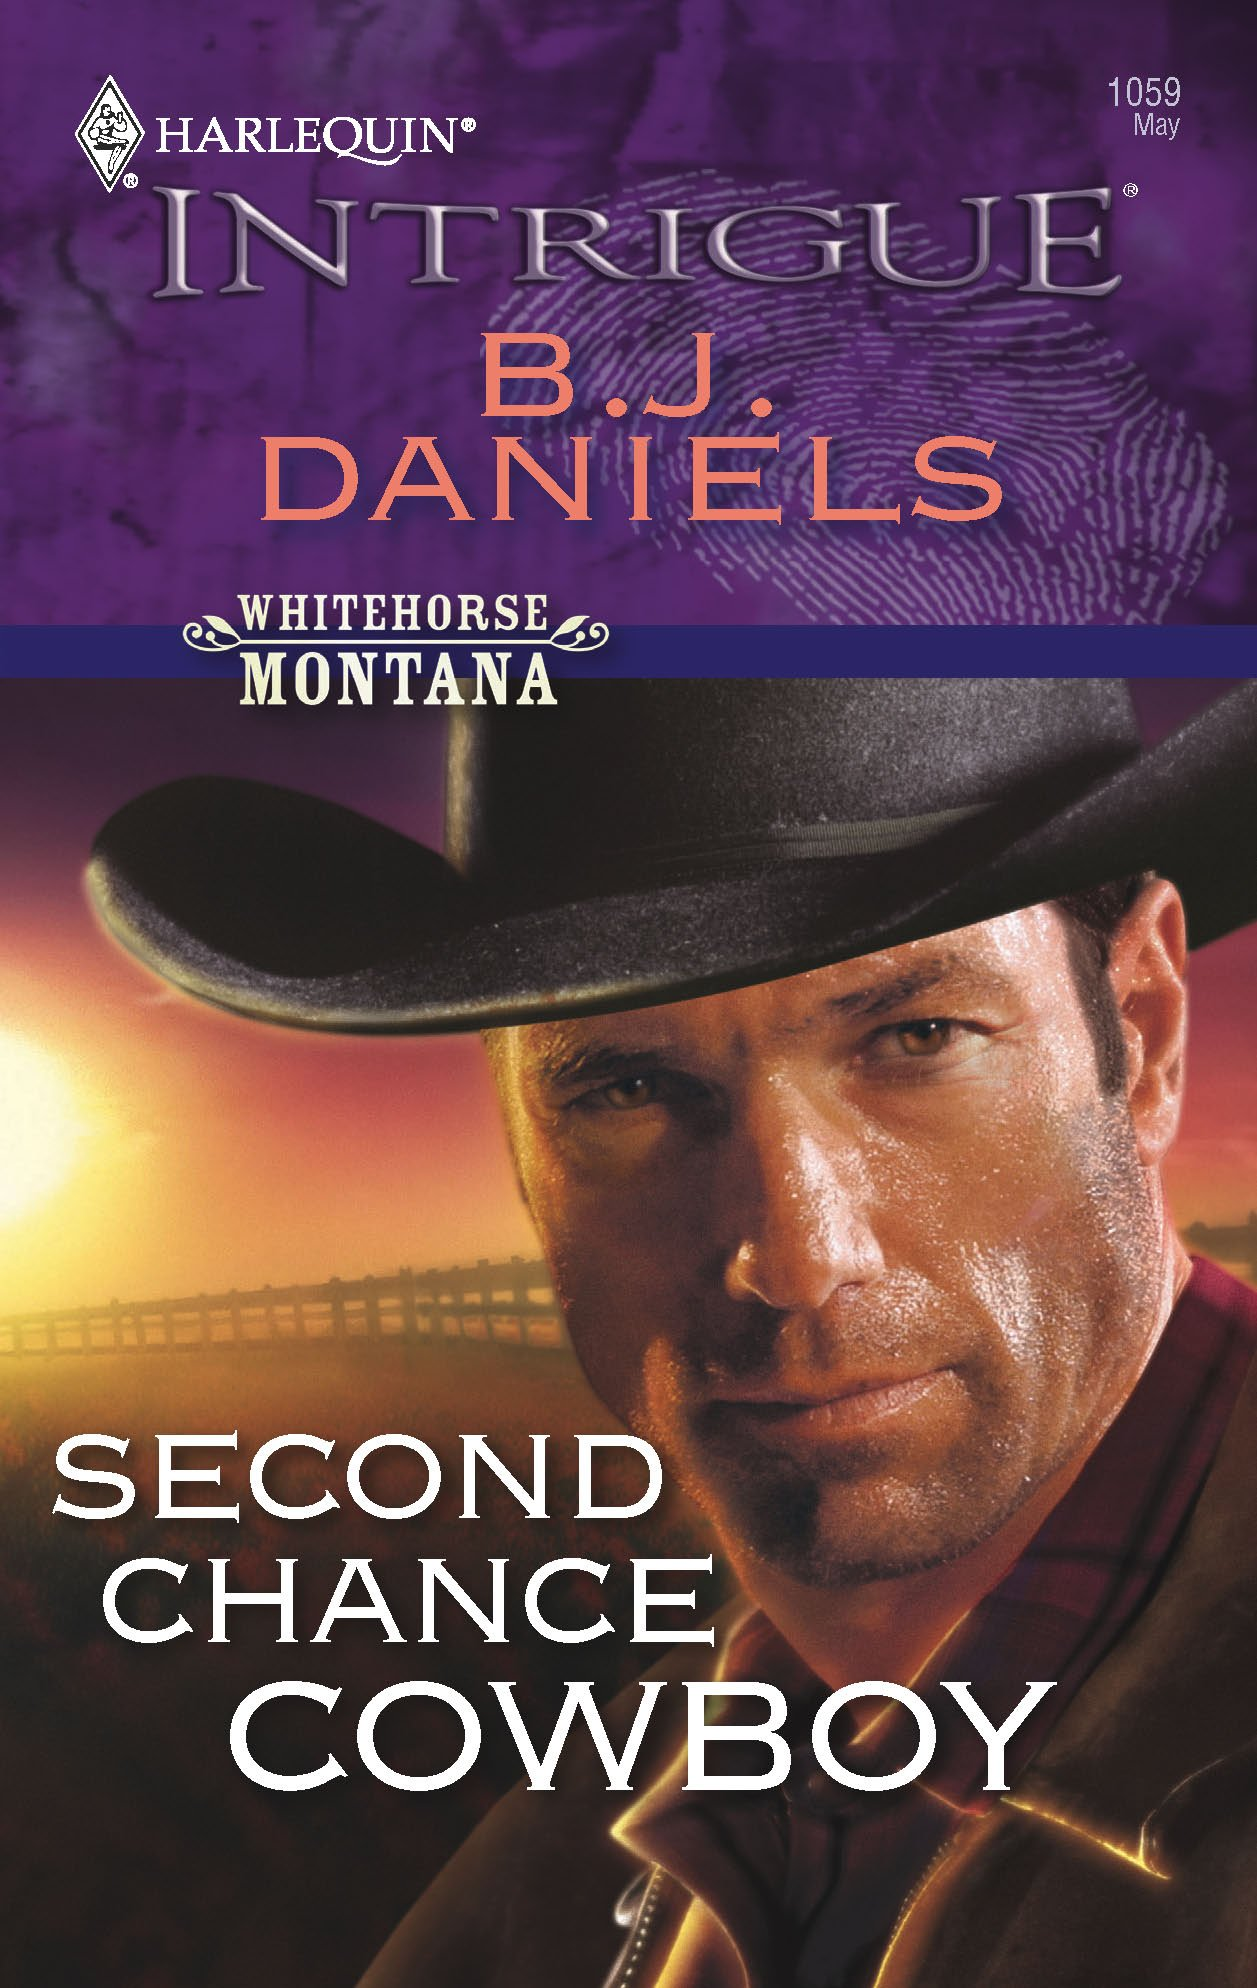 Second Chance Cowboy by Harlequin Intrigue